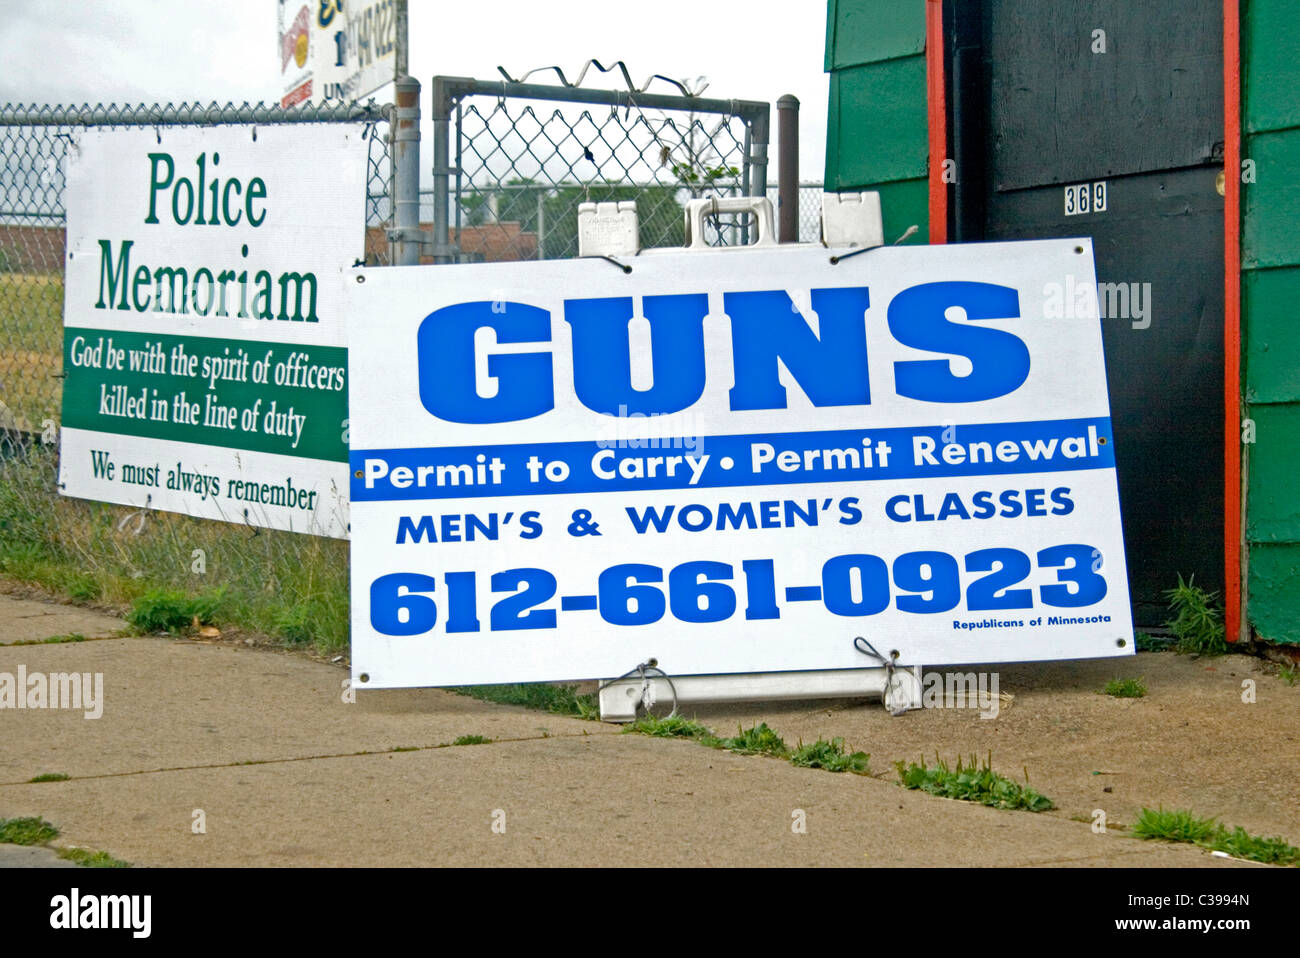 Signs for police Memoriam and classes for permits to carry guns. St Paul Minnesota MN USA - Stock Image